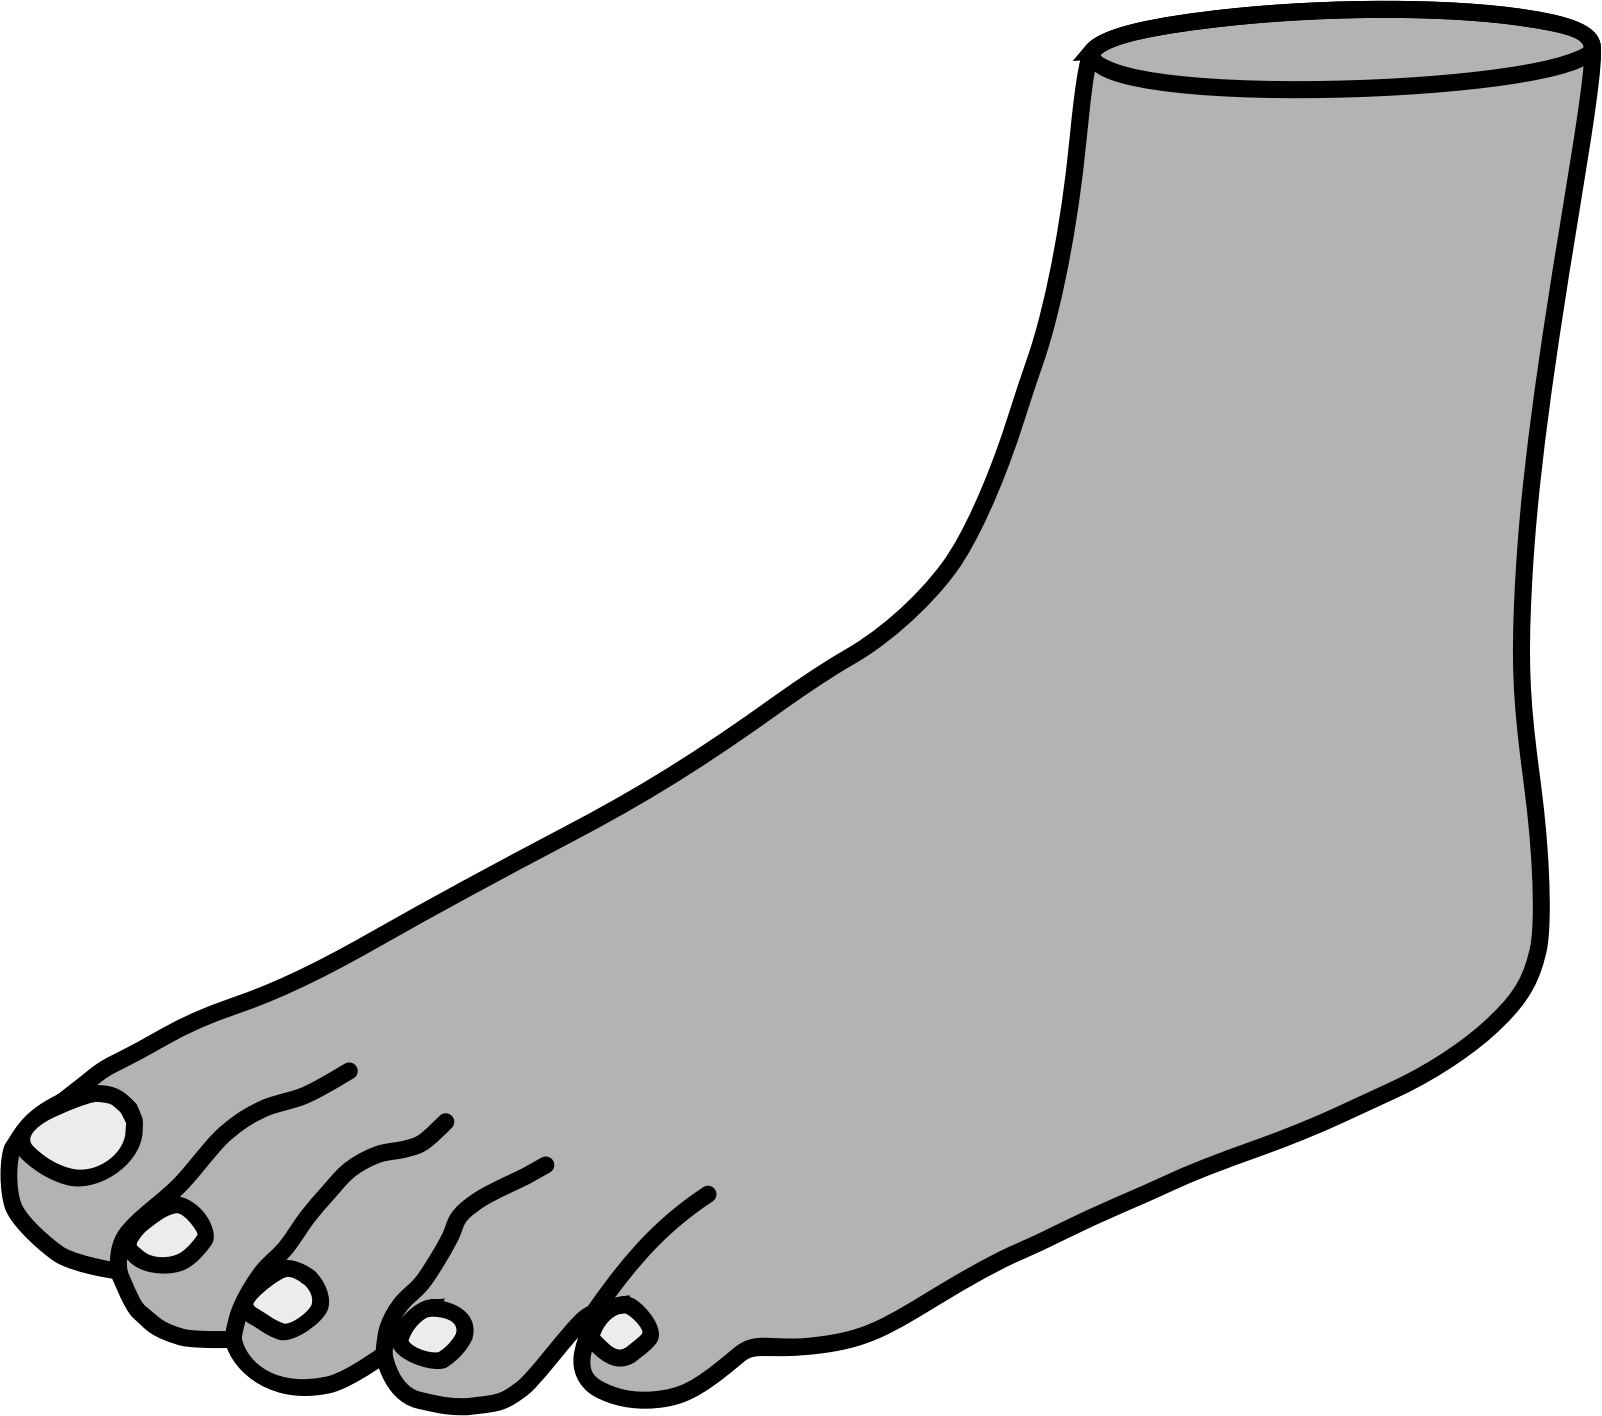 1602x1416 Big Foot Clipart Black And White